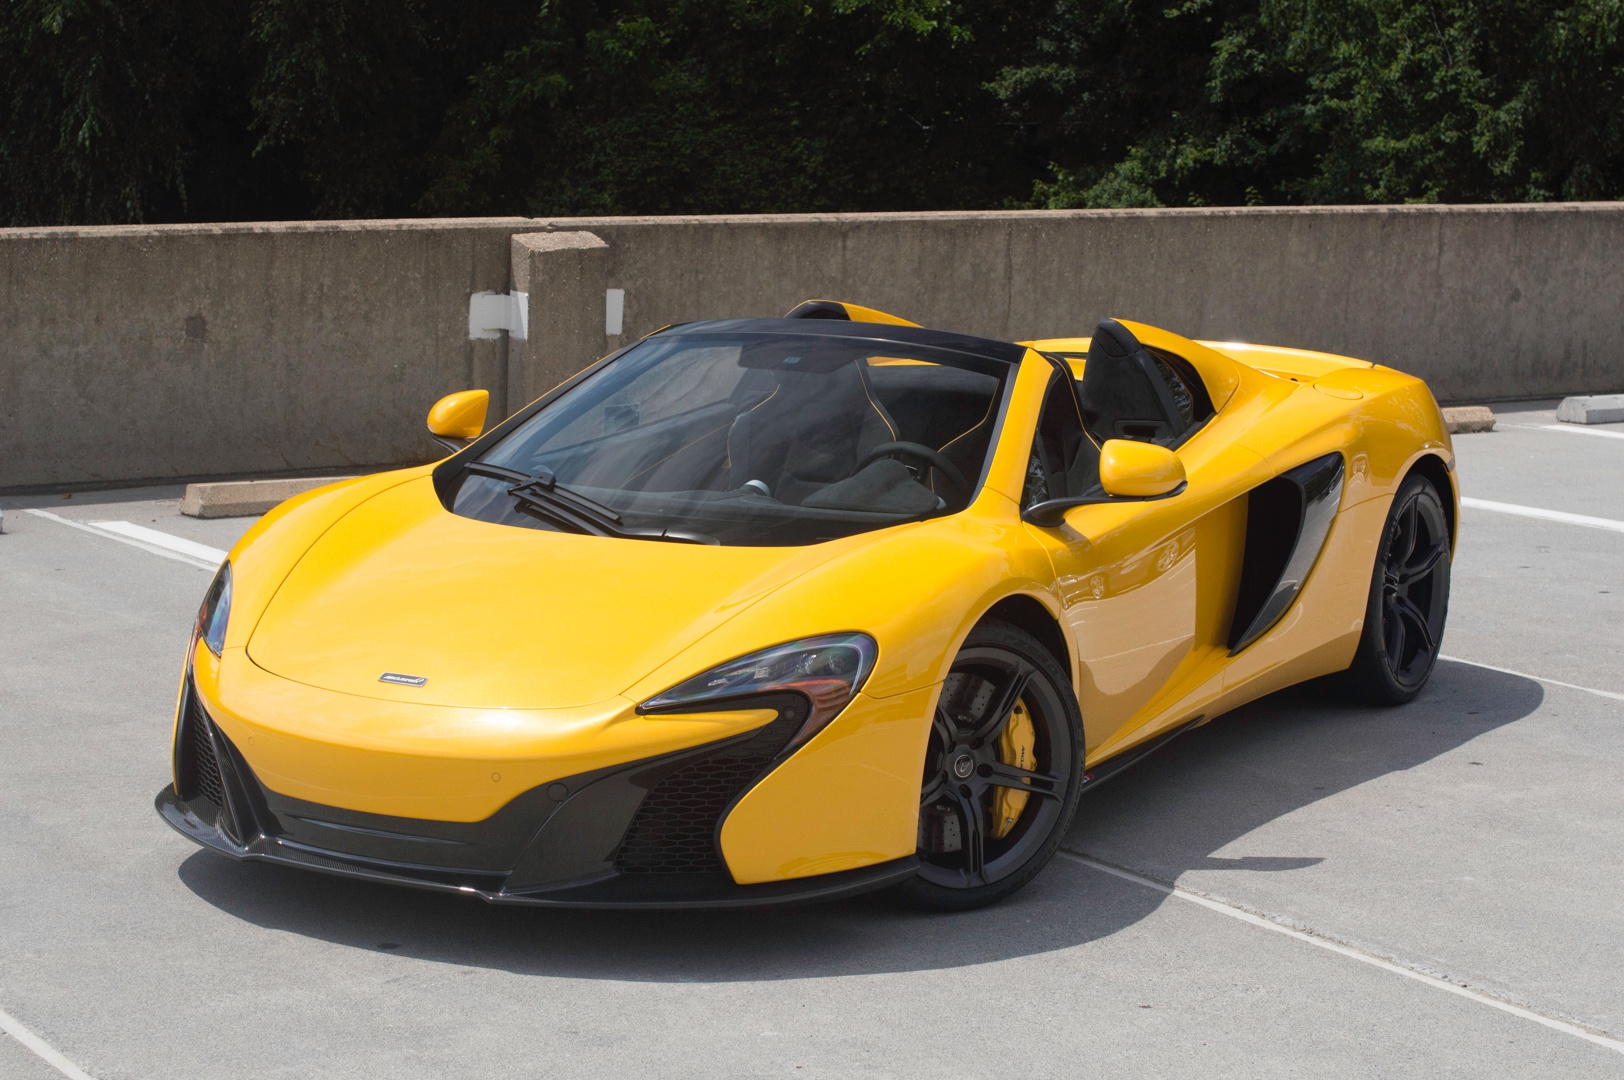 2015 mclaren 650s spider stock # 5n003800 for sale near vienna, va